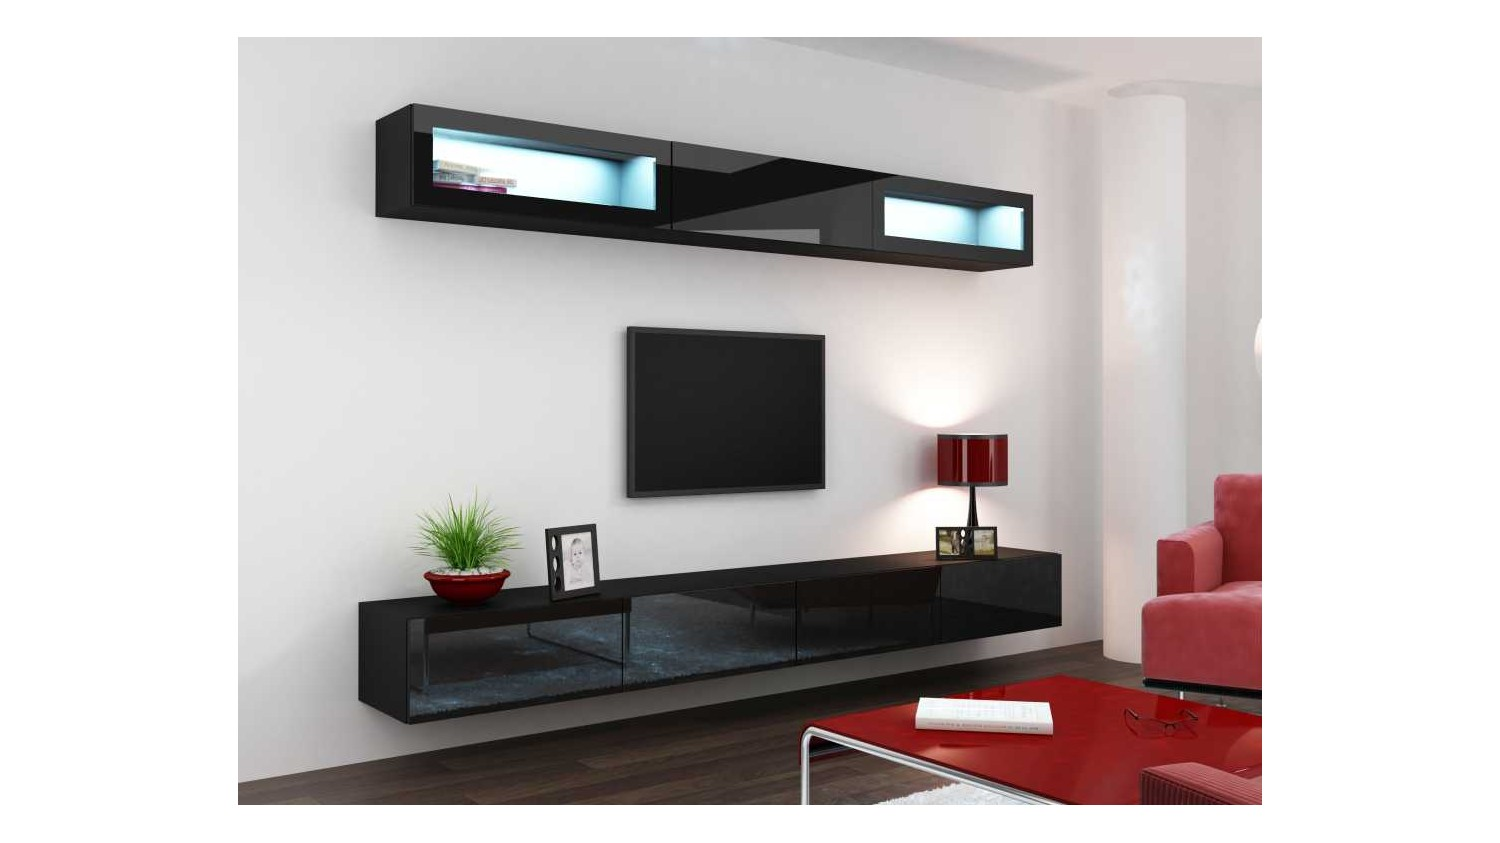 choisir un meuble tv comment faire le bon choix. Black Bedroom Furniture Sets. Home Design Ideas